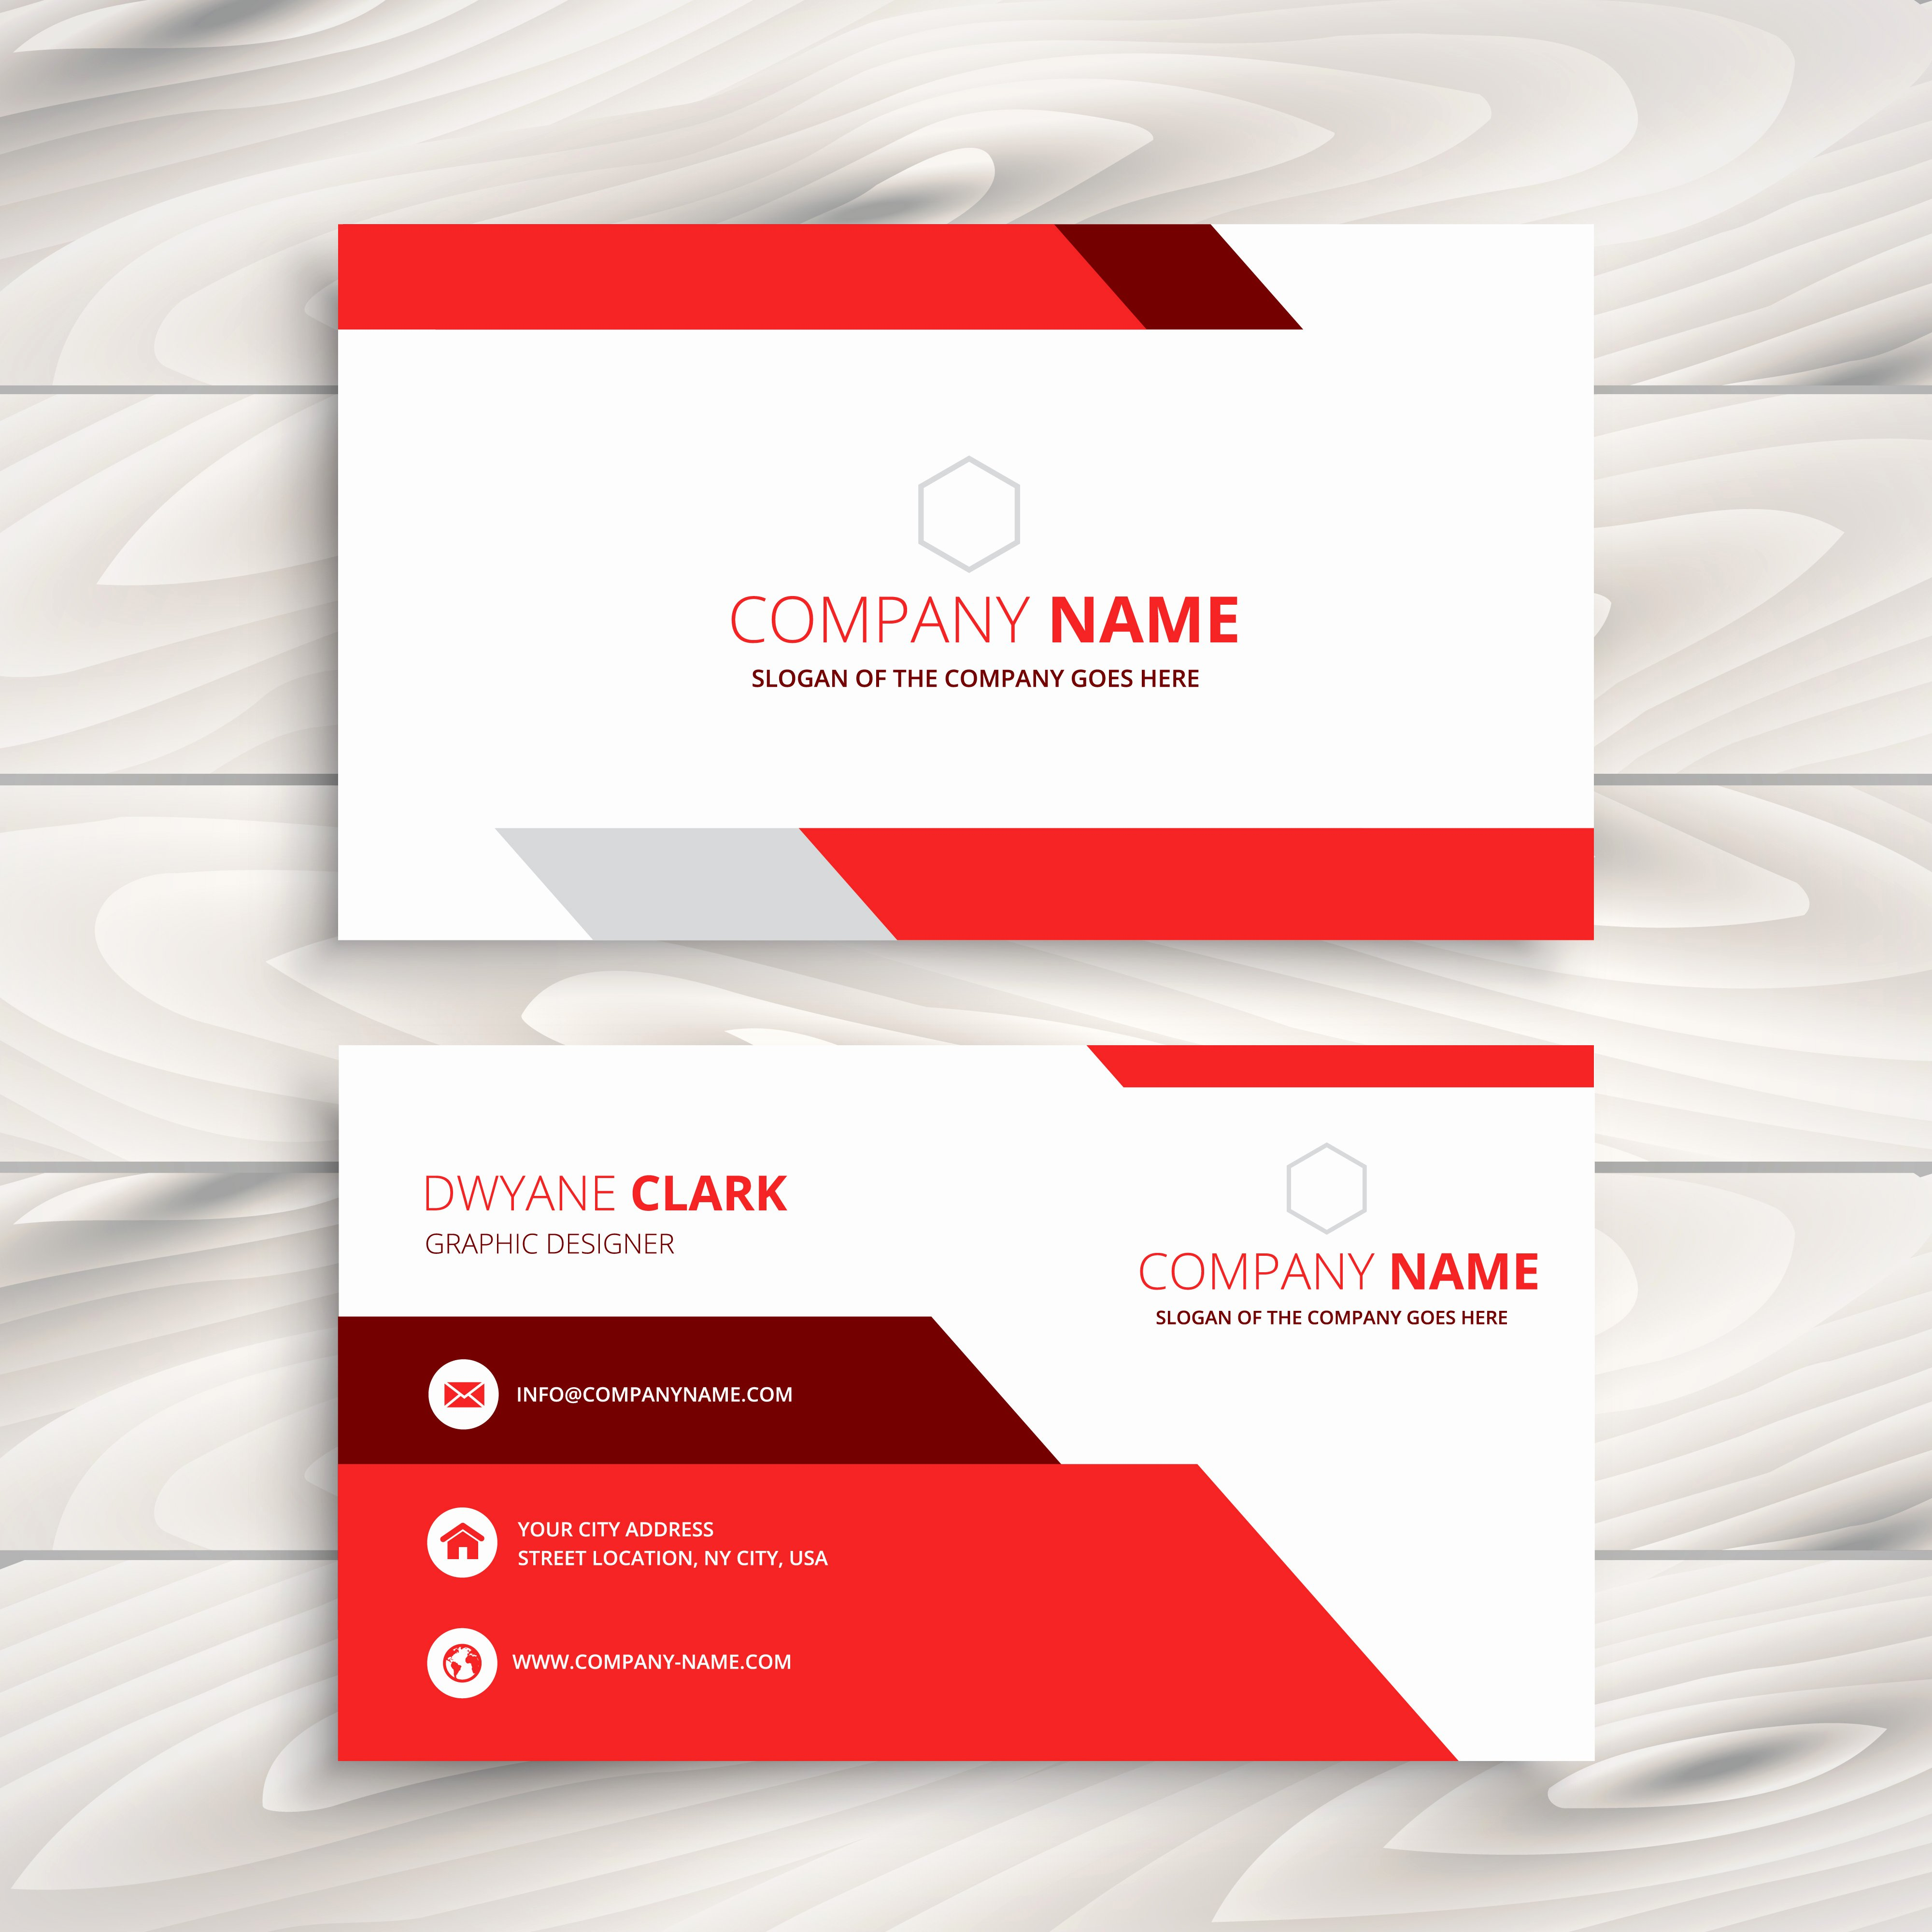 Business Card Template Vector New Red Modern Business Card Template Vector Design